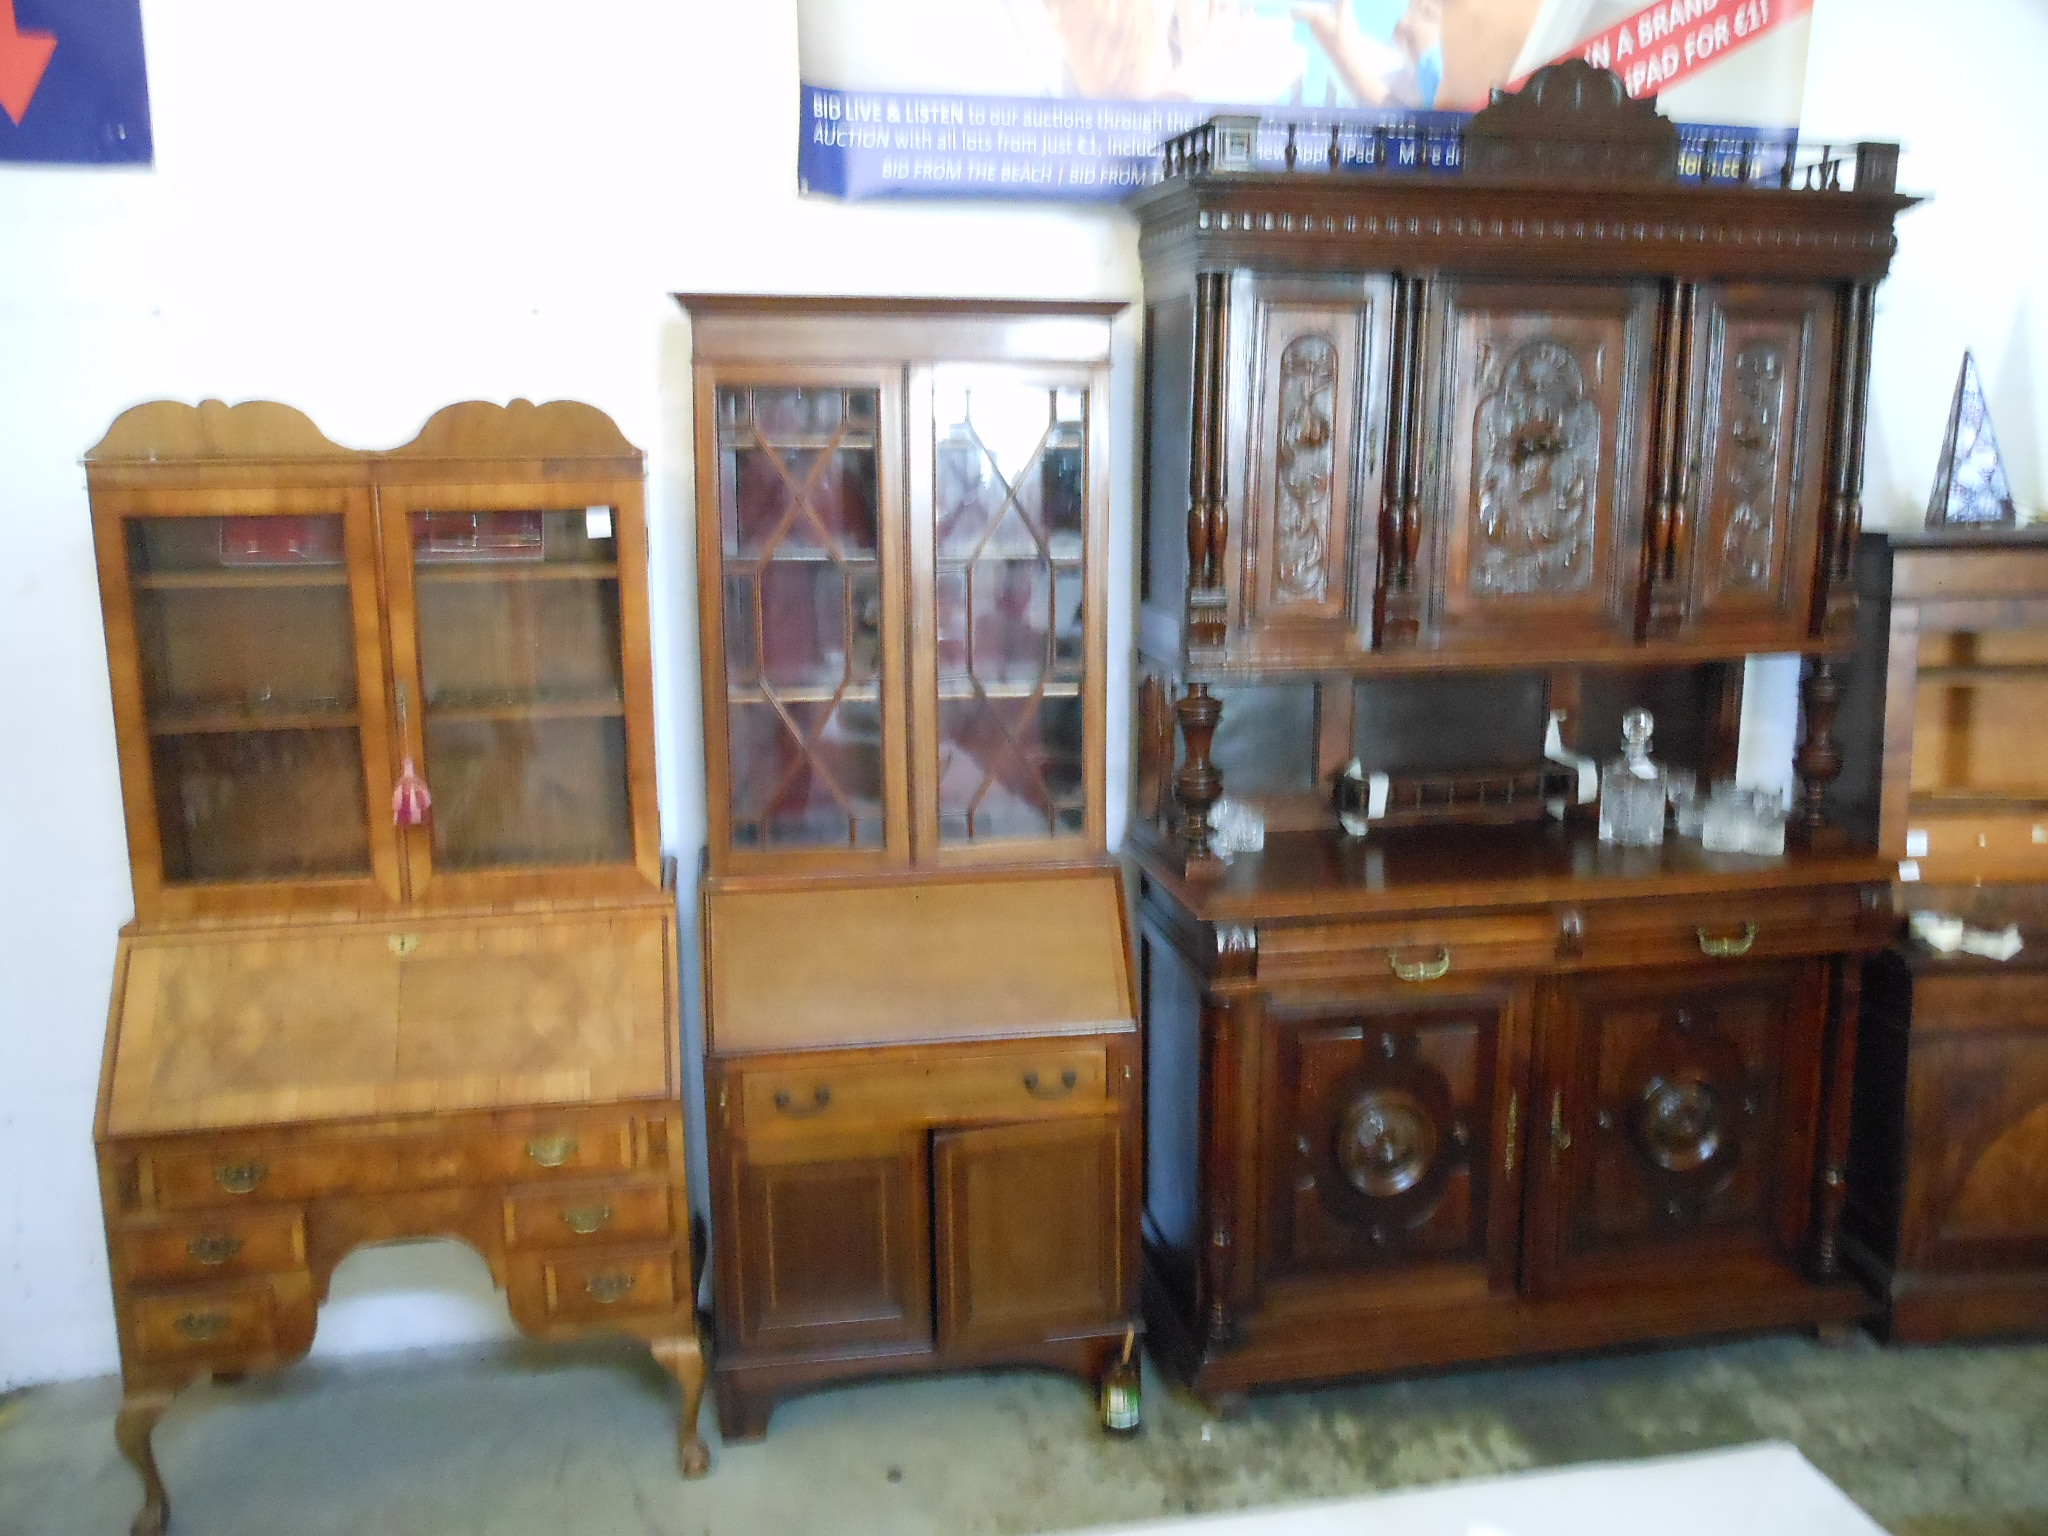 Beautiful Antique Furniture for sale at our Limassol saleroom 01.12.2018